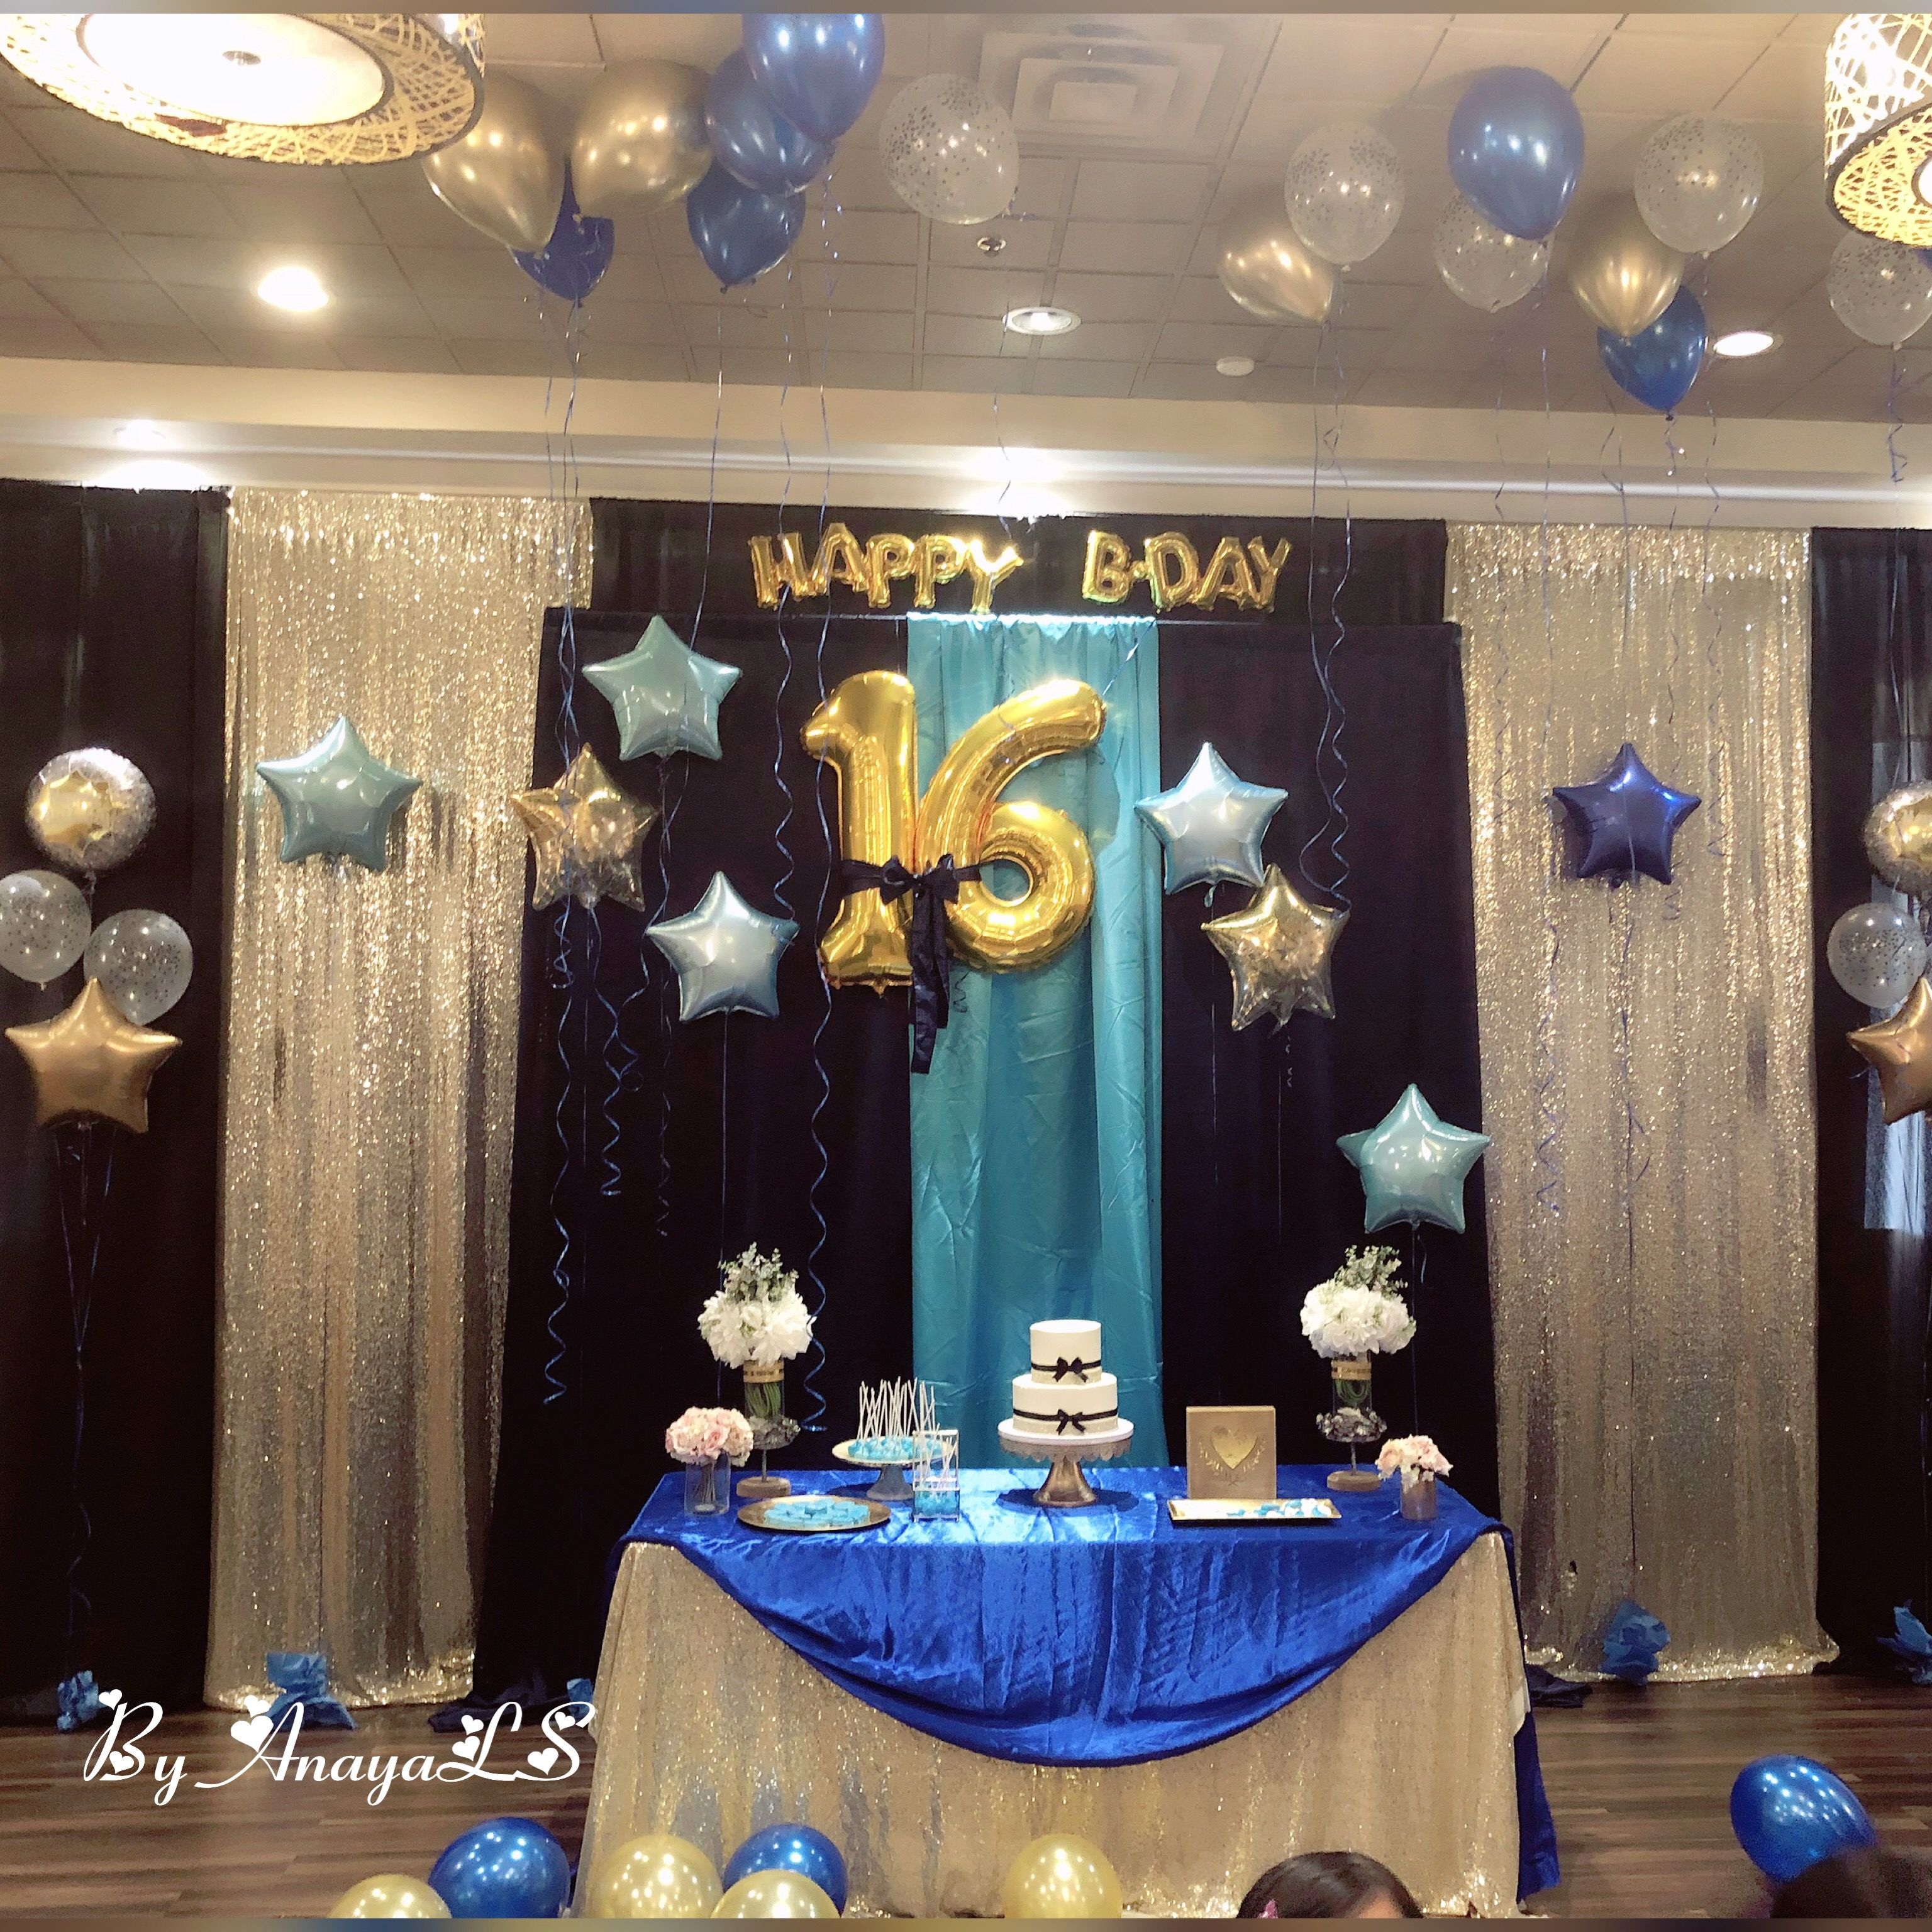 All Decor Was Set On Black Gold And Shade Of Blues Yet I Decided